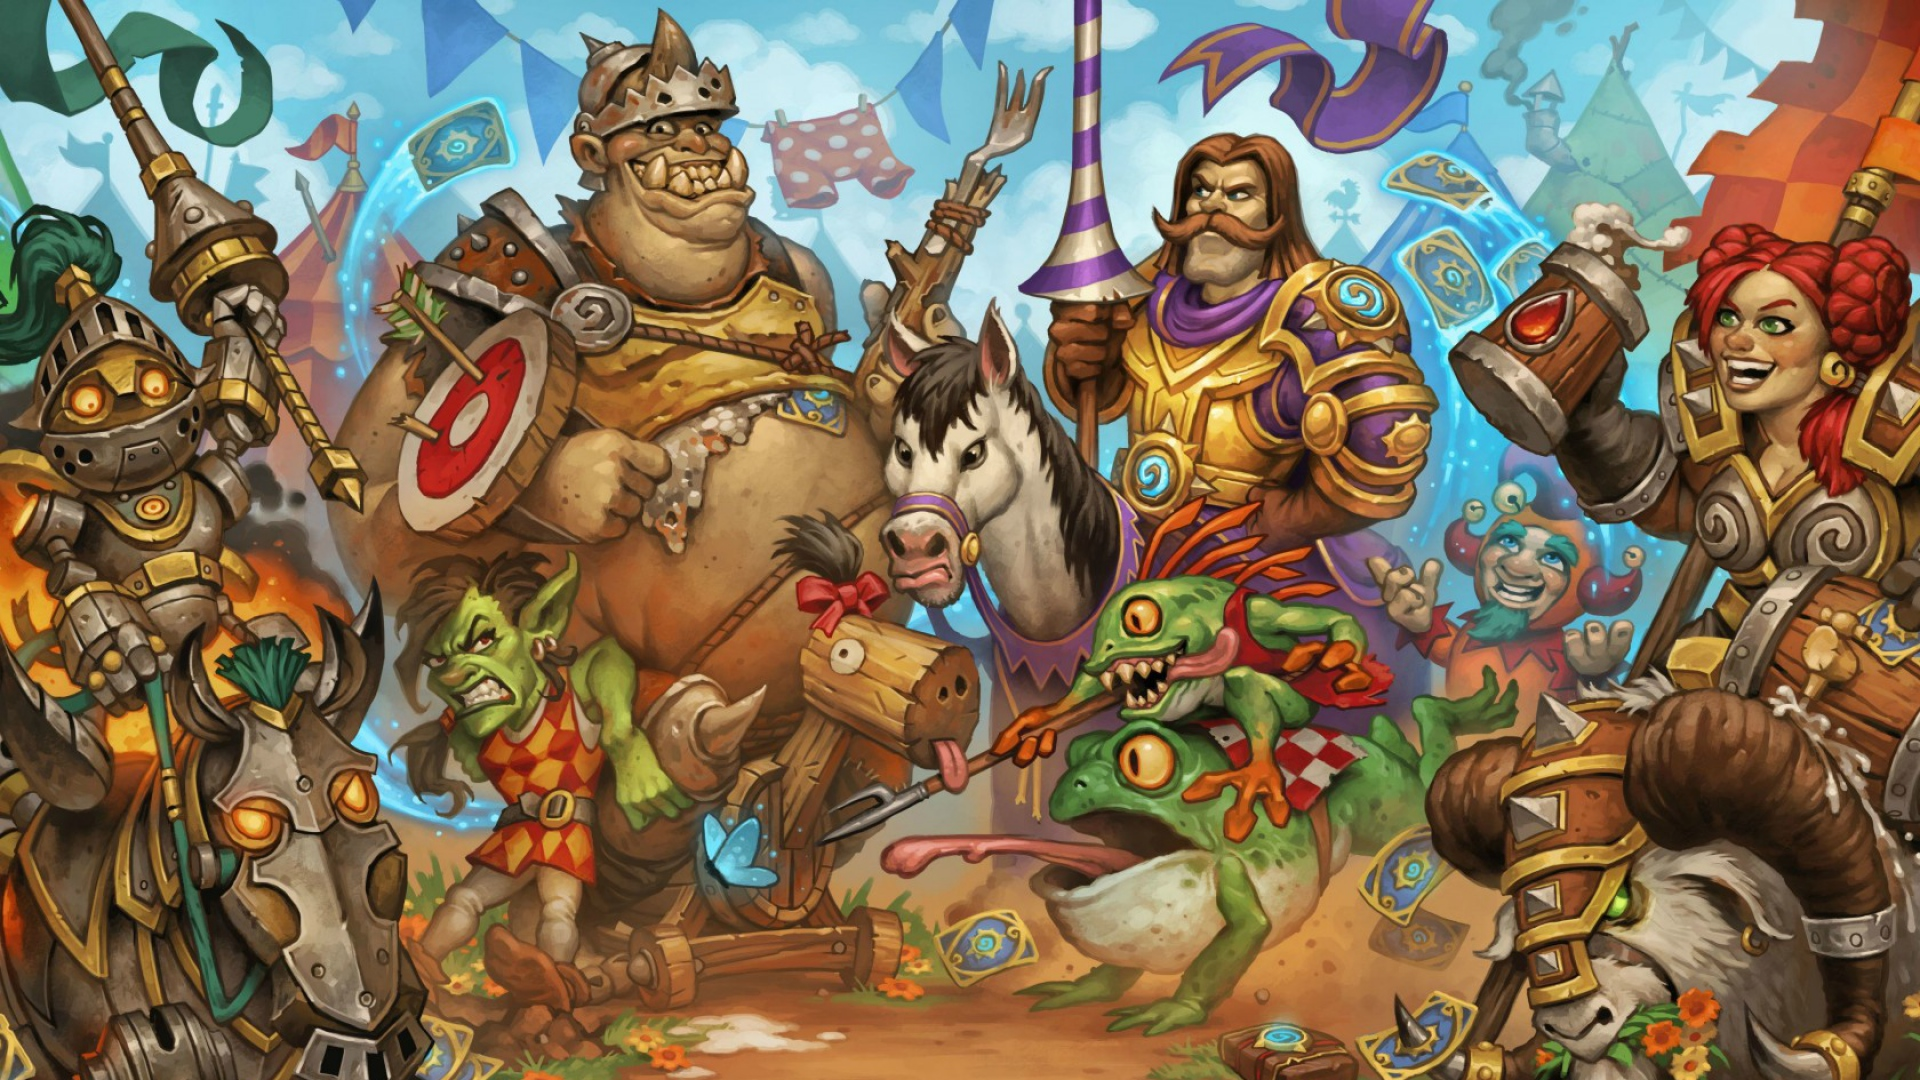 Hearthstone Wallpaper 1920x1080 Posted By Ryan Johnson